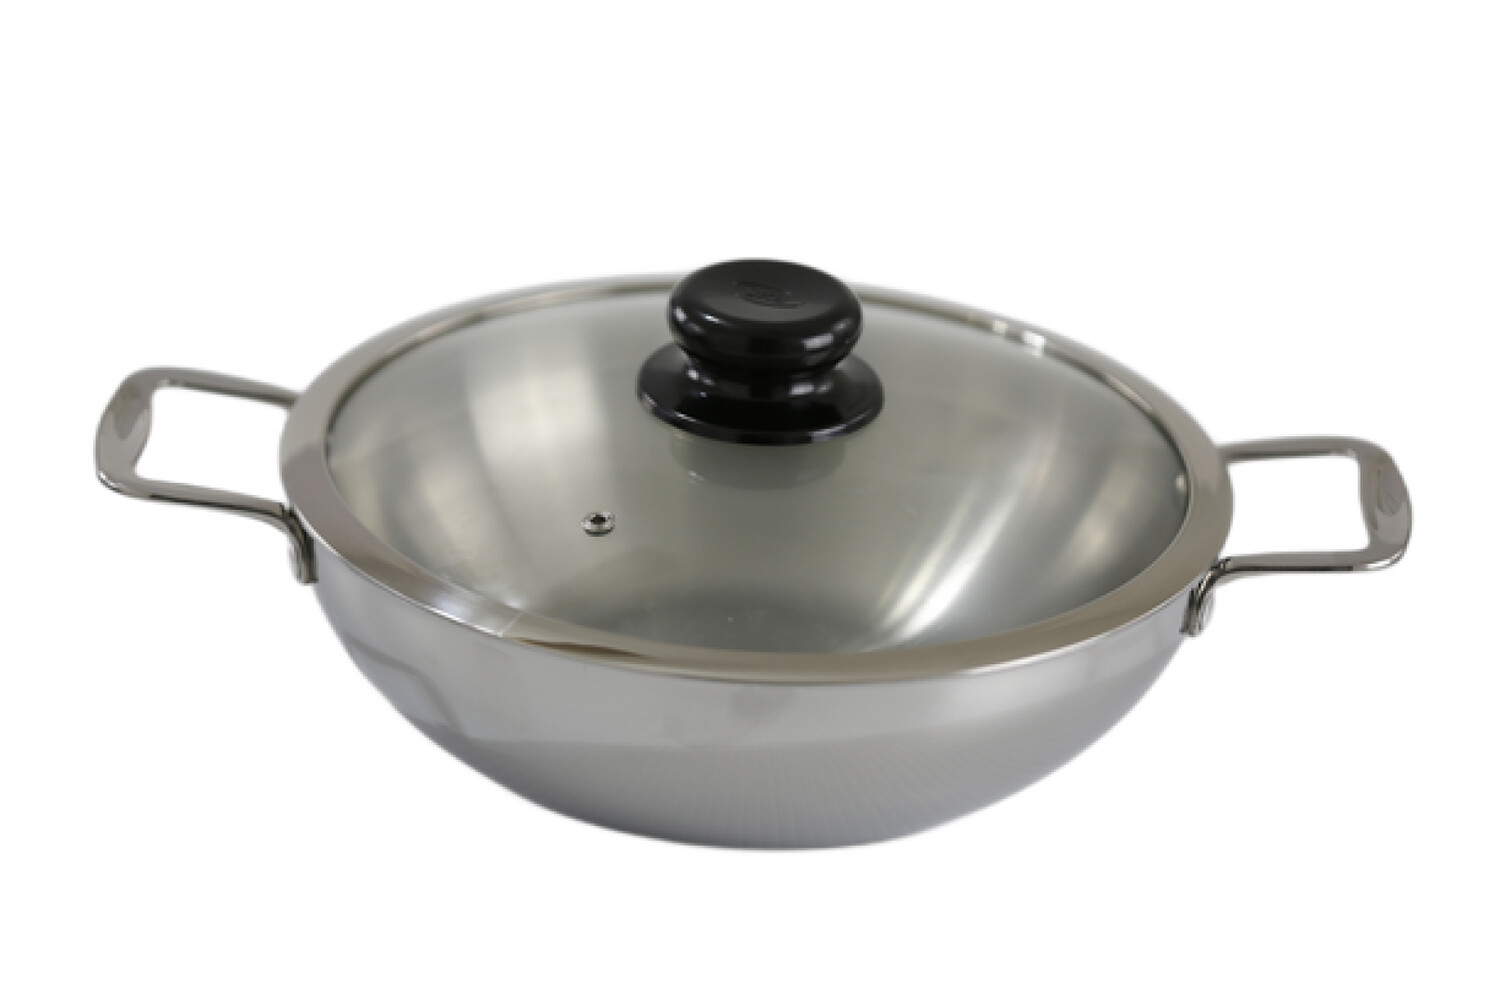 Tri-Ply Stainless Steel Wok With Glass Cover